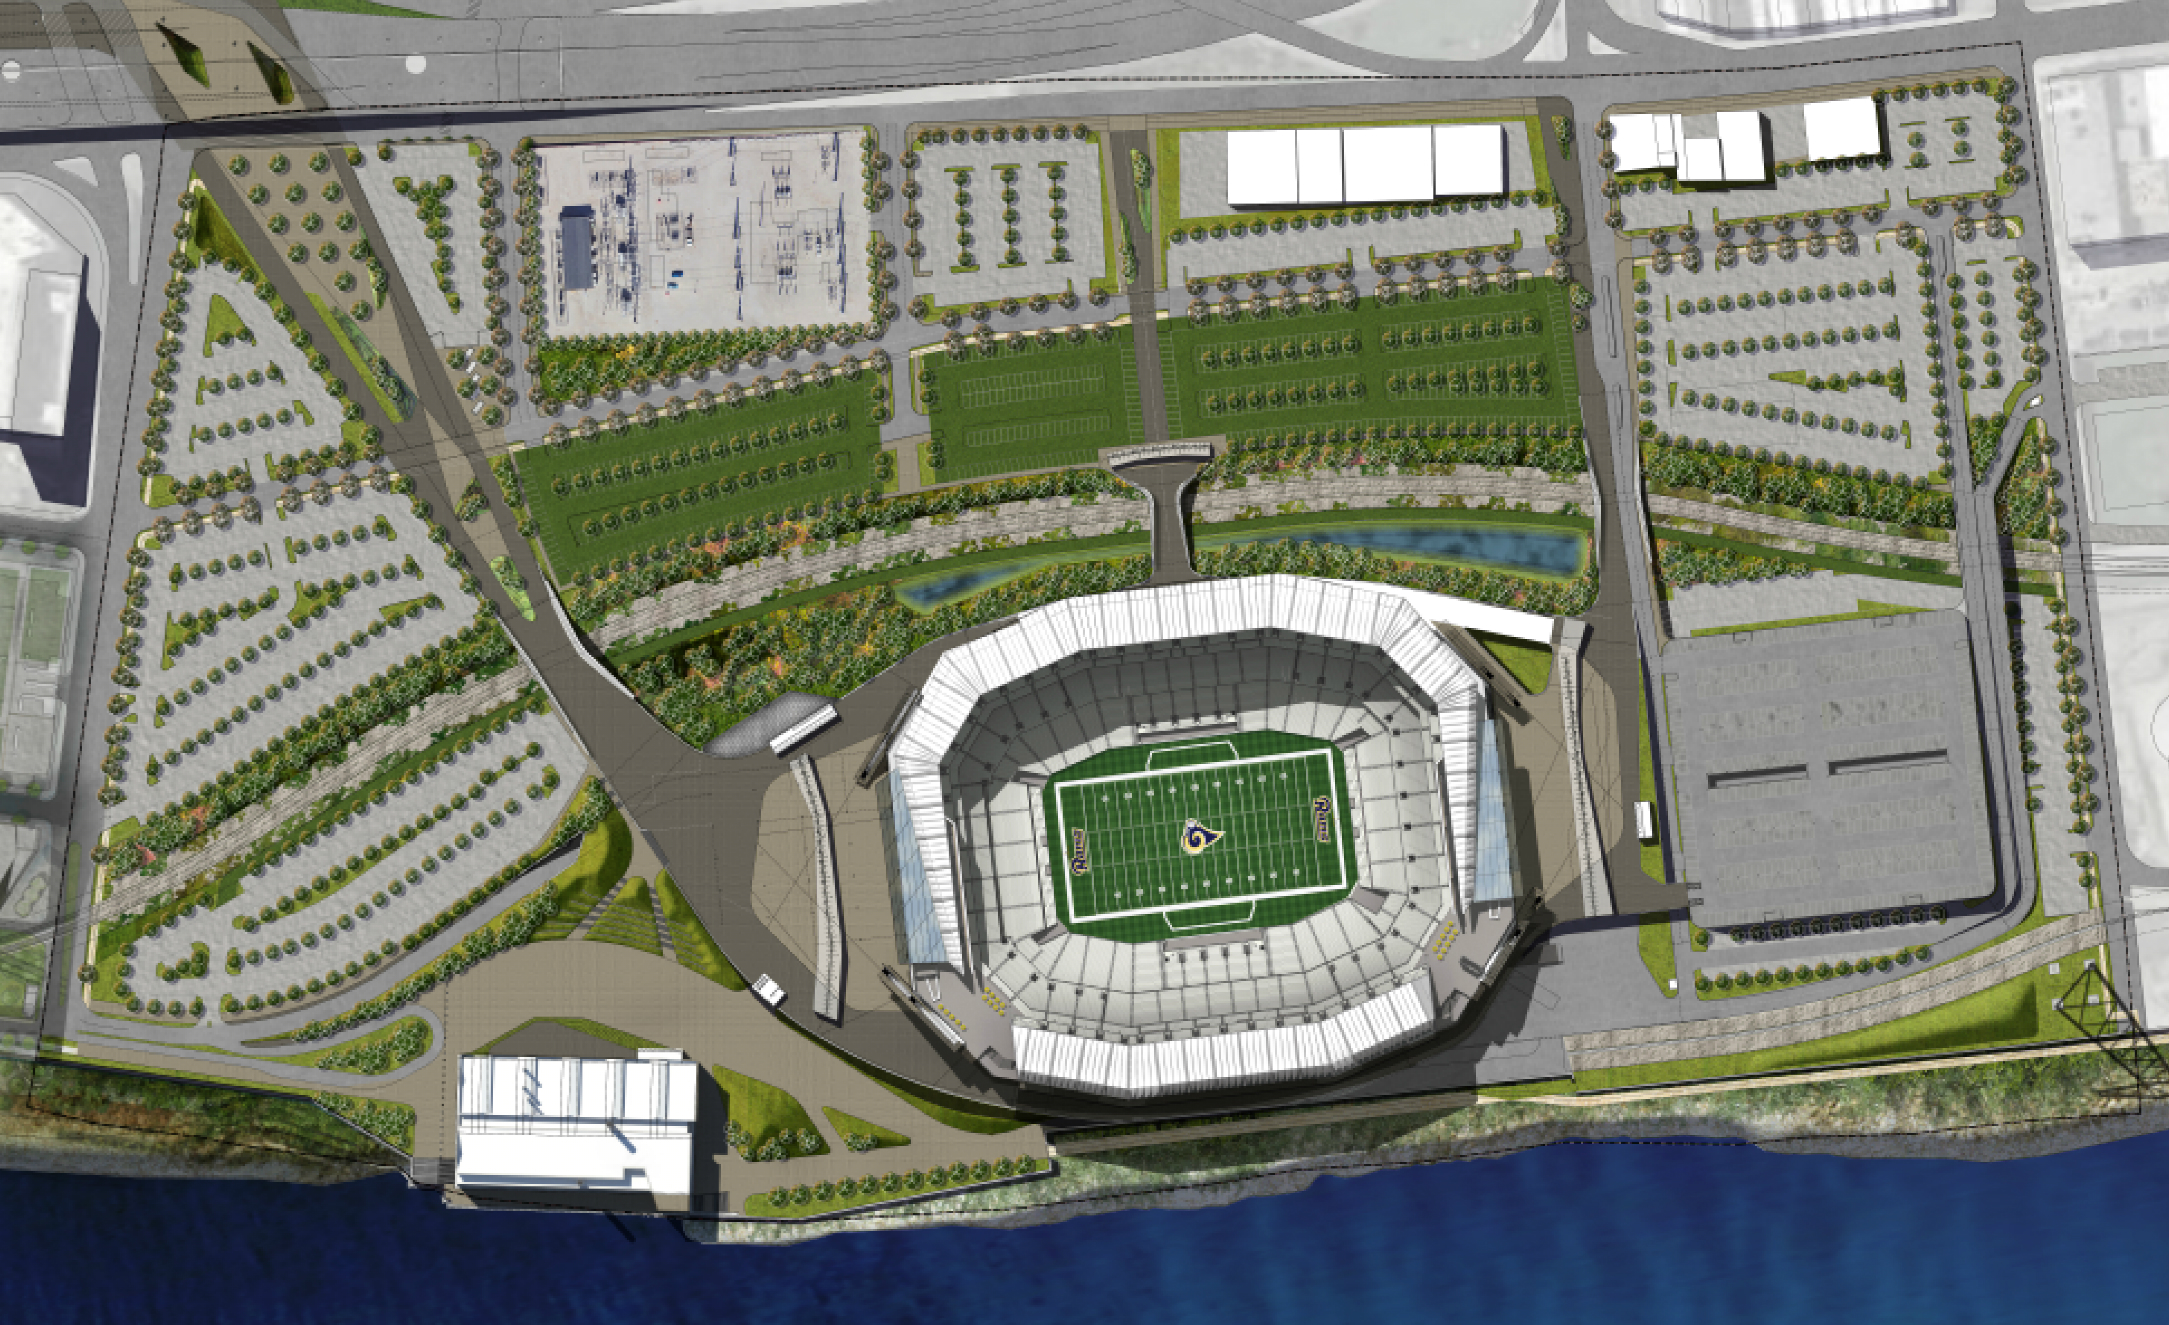 NFL stadium proposal - St. Louis, MO 09/01/2015